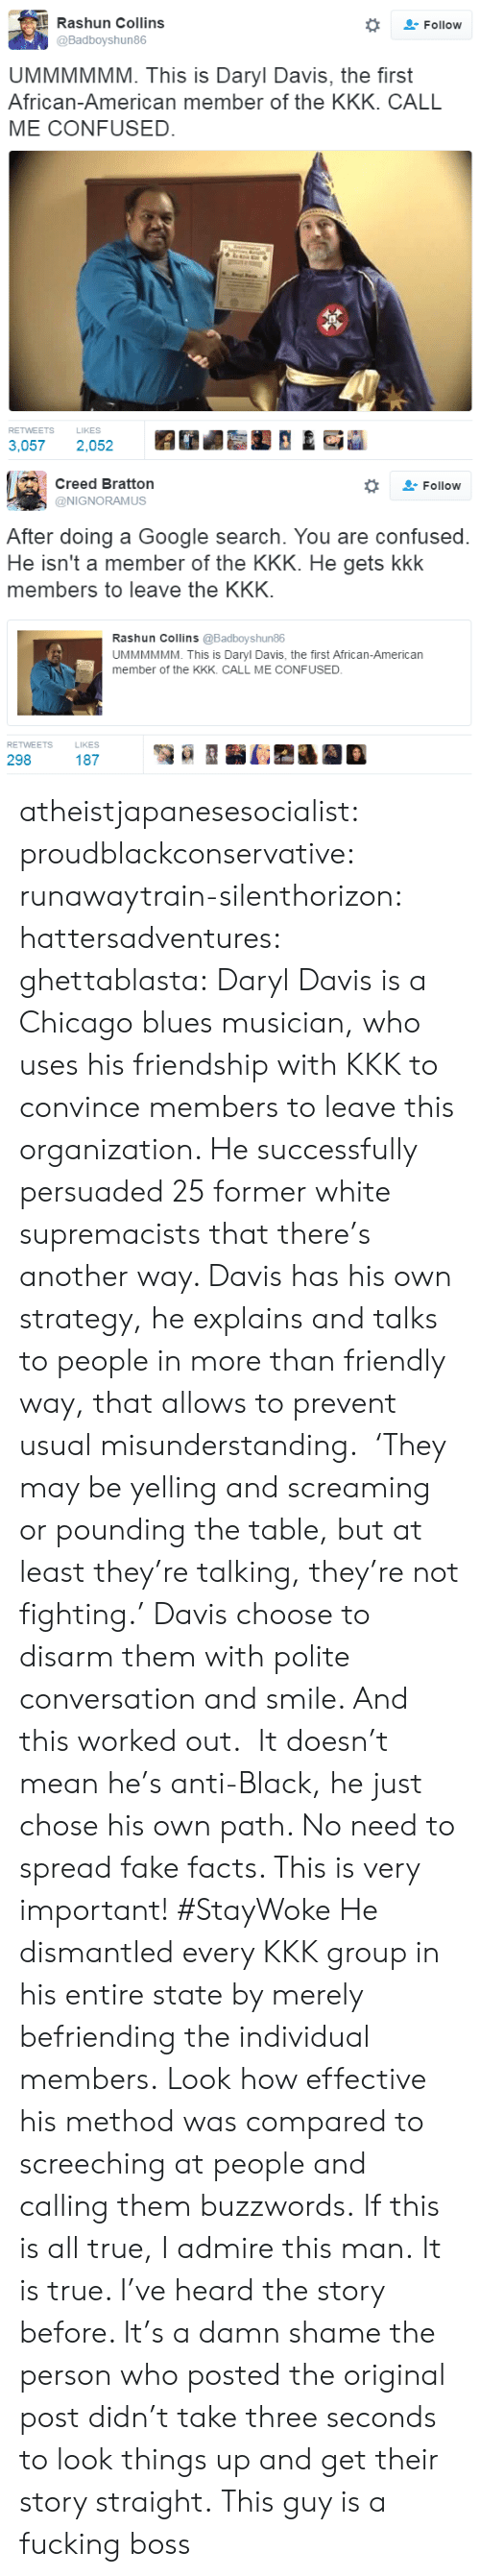 Chicago, Confused, and Facts: Rashun Collins  Follow  @Badboyshun86  UMMMMMM. This is Daryl Davis, the first  African-American member of the KKK. CALL  ME CONFUSED.  LIKES  RETWEETS  3,057  2,052   Creed Bratton  Follow  @NIGNORAMUS  After doing a Google search. You are confused.  He isn't a member of the KKK. He gets  members to leave the KKK  kkk  Rashun Collins @Badboyshun86  UMMMMMM. This is Daryl Davis, the first African-American  member of the KKK. CALL ME CONFUSED  RETWEETS  LIKES  298  187 atheistjapanesesocialist:  proudblackconservative:   runawaytrain-silenthorizon:  hattersadventures:  ghettablasta:    Daryl Davis is a Chicago blues musician, who uses his friendship with KKK to convince members to leave this organization. He successfully persuaded 25 former white supremacists that there's another way. Davis has his own strategy, he explains and talks to people in more than friendly way, that allows to prevent usual misunderstanding.    'They may be yelling and screaming or pounding the table, but at least they're talking, they're not fighting.'  Davis choose to disarm them with polite conversation and smile. And this worked out.  It doesn't mean he's anti-Black, he just chose his own path. No need to spread fake facts. This is very important! #StayWoke  He dismantled every KKK group in his entire state by merely befriending the individual members. Look how effective his method was compared to screeching at people and calling them buzzwords.   If this is all true, I admire this man.  It is true. I've heard the story before. It's a damn shame the person who posted the original post didn't take three seconds to look things up and get their story straight.   This guy is a fucking boss